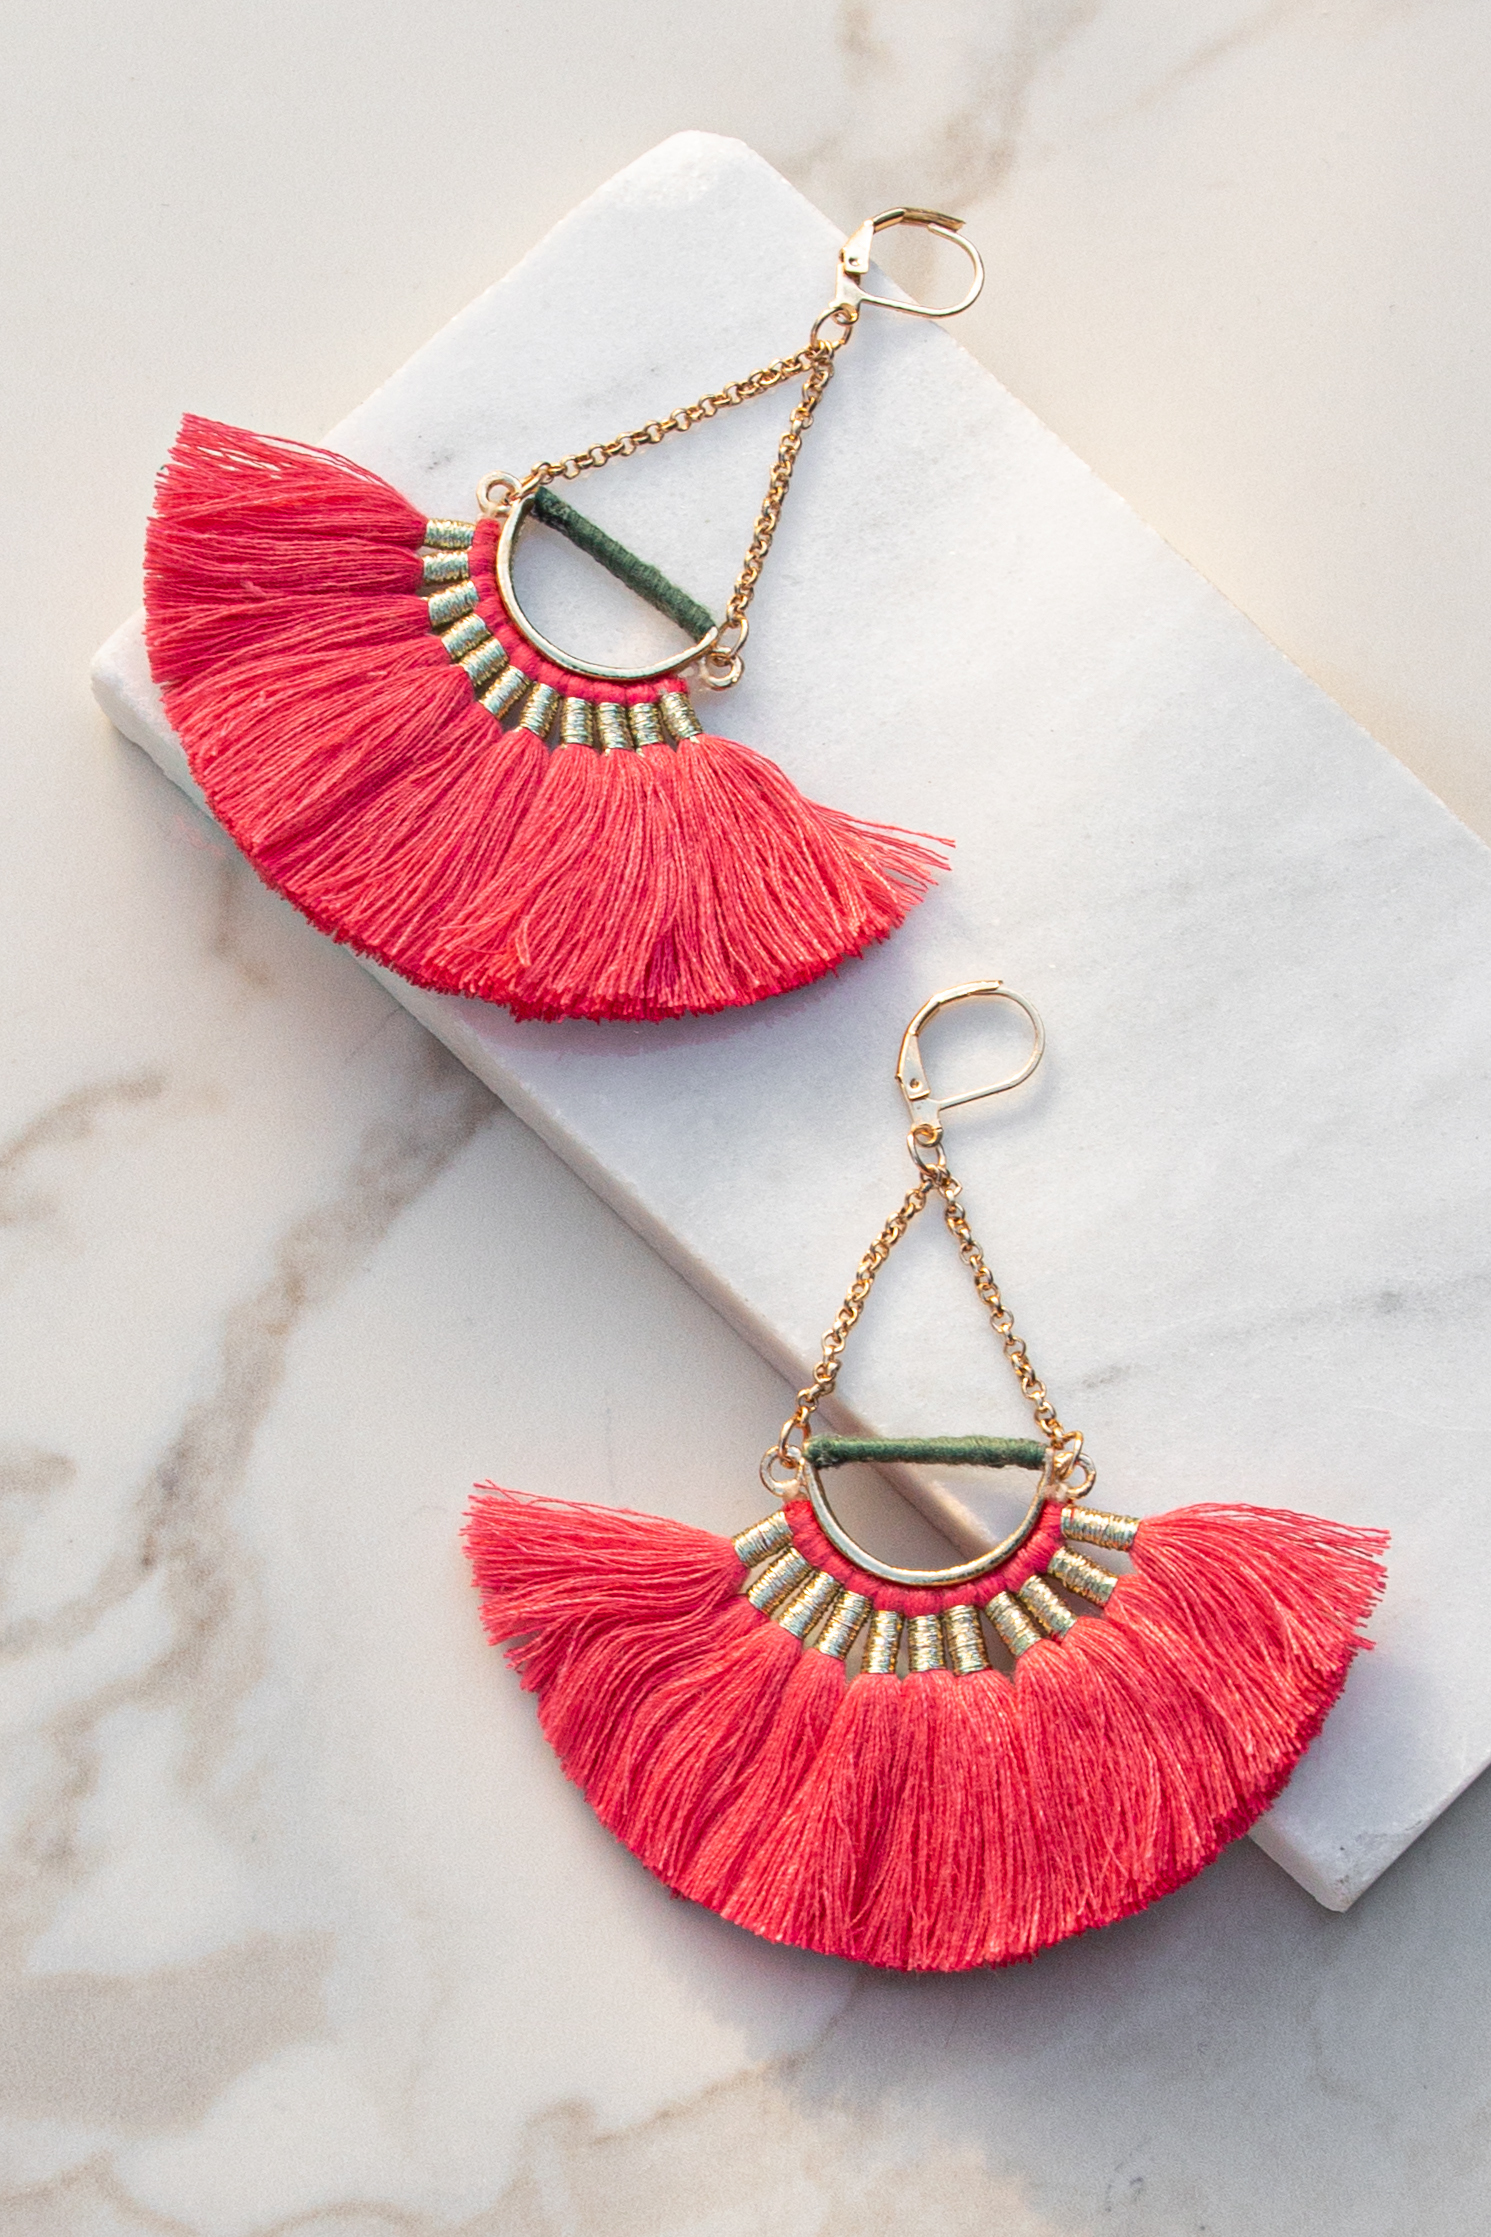 Gold and Coral Chandelier Earrings with Fringe